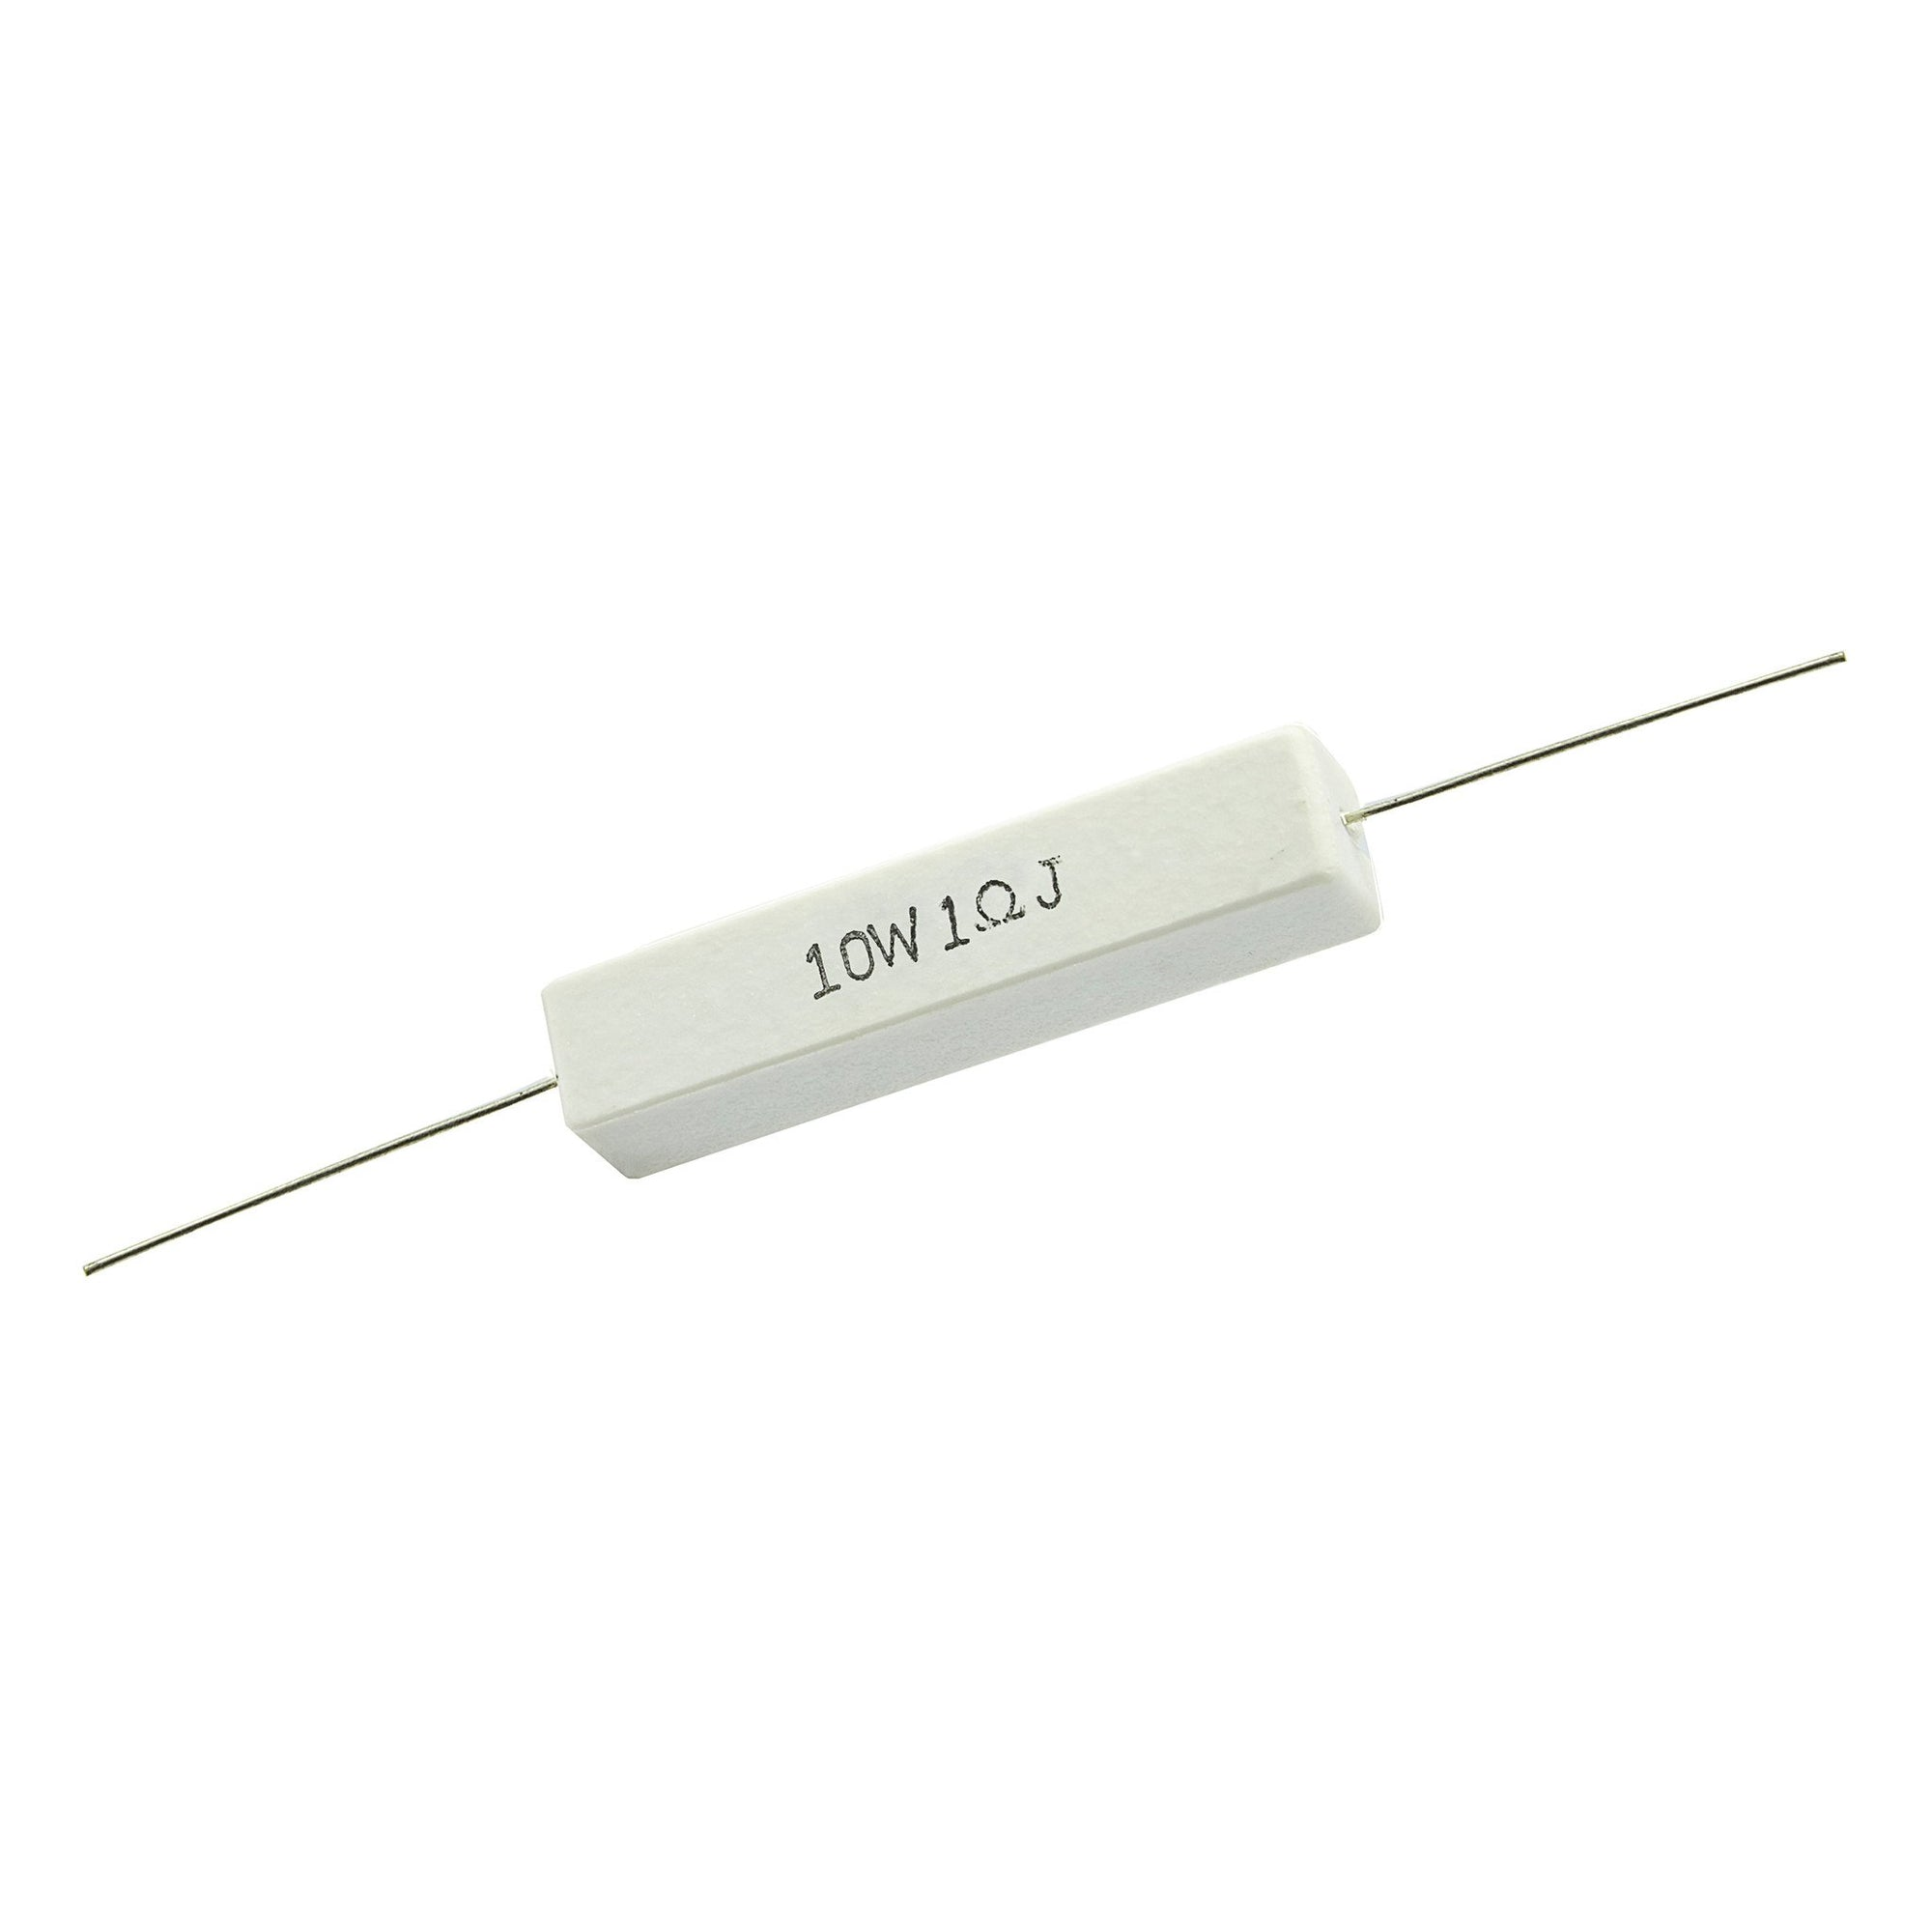 3 Ohm 10 Watt 5% Ceramic Wirewound Resistor - Willys-Hifi Ltd